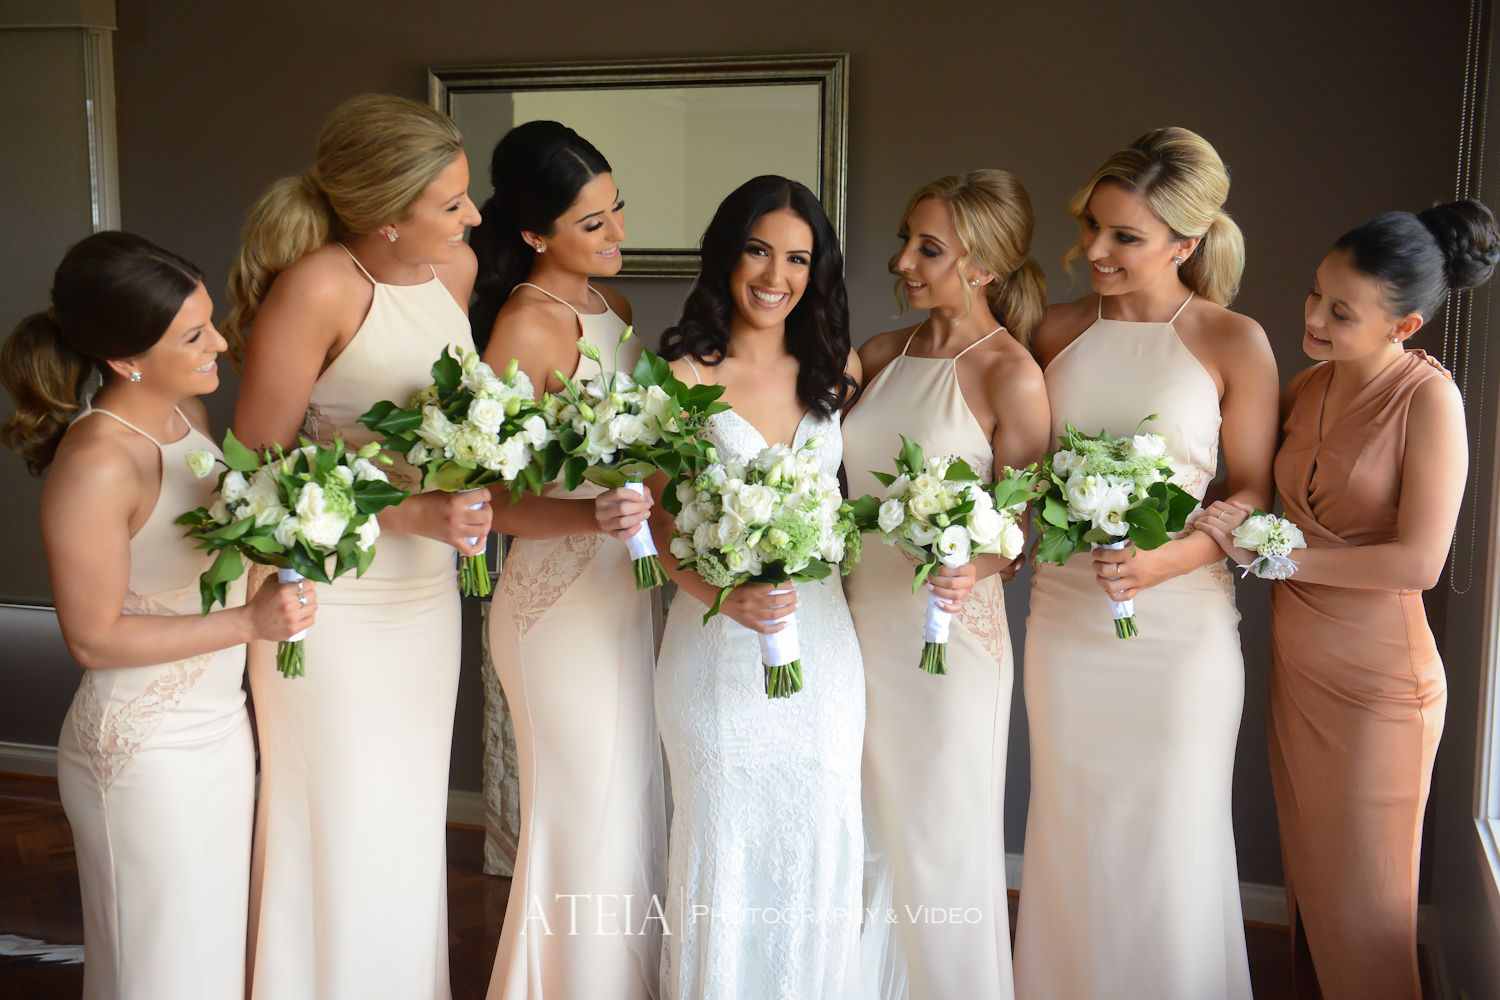 Morning wedding dresses  Love Honor Bridesmaid Dresses By White Runway  The wedding day